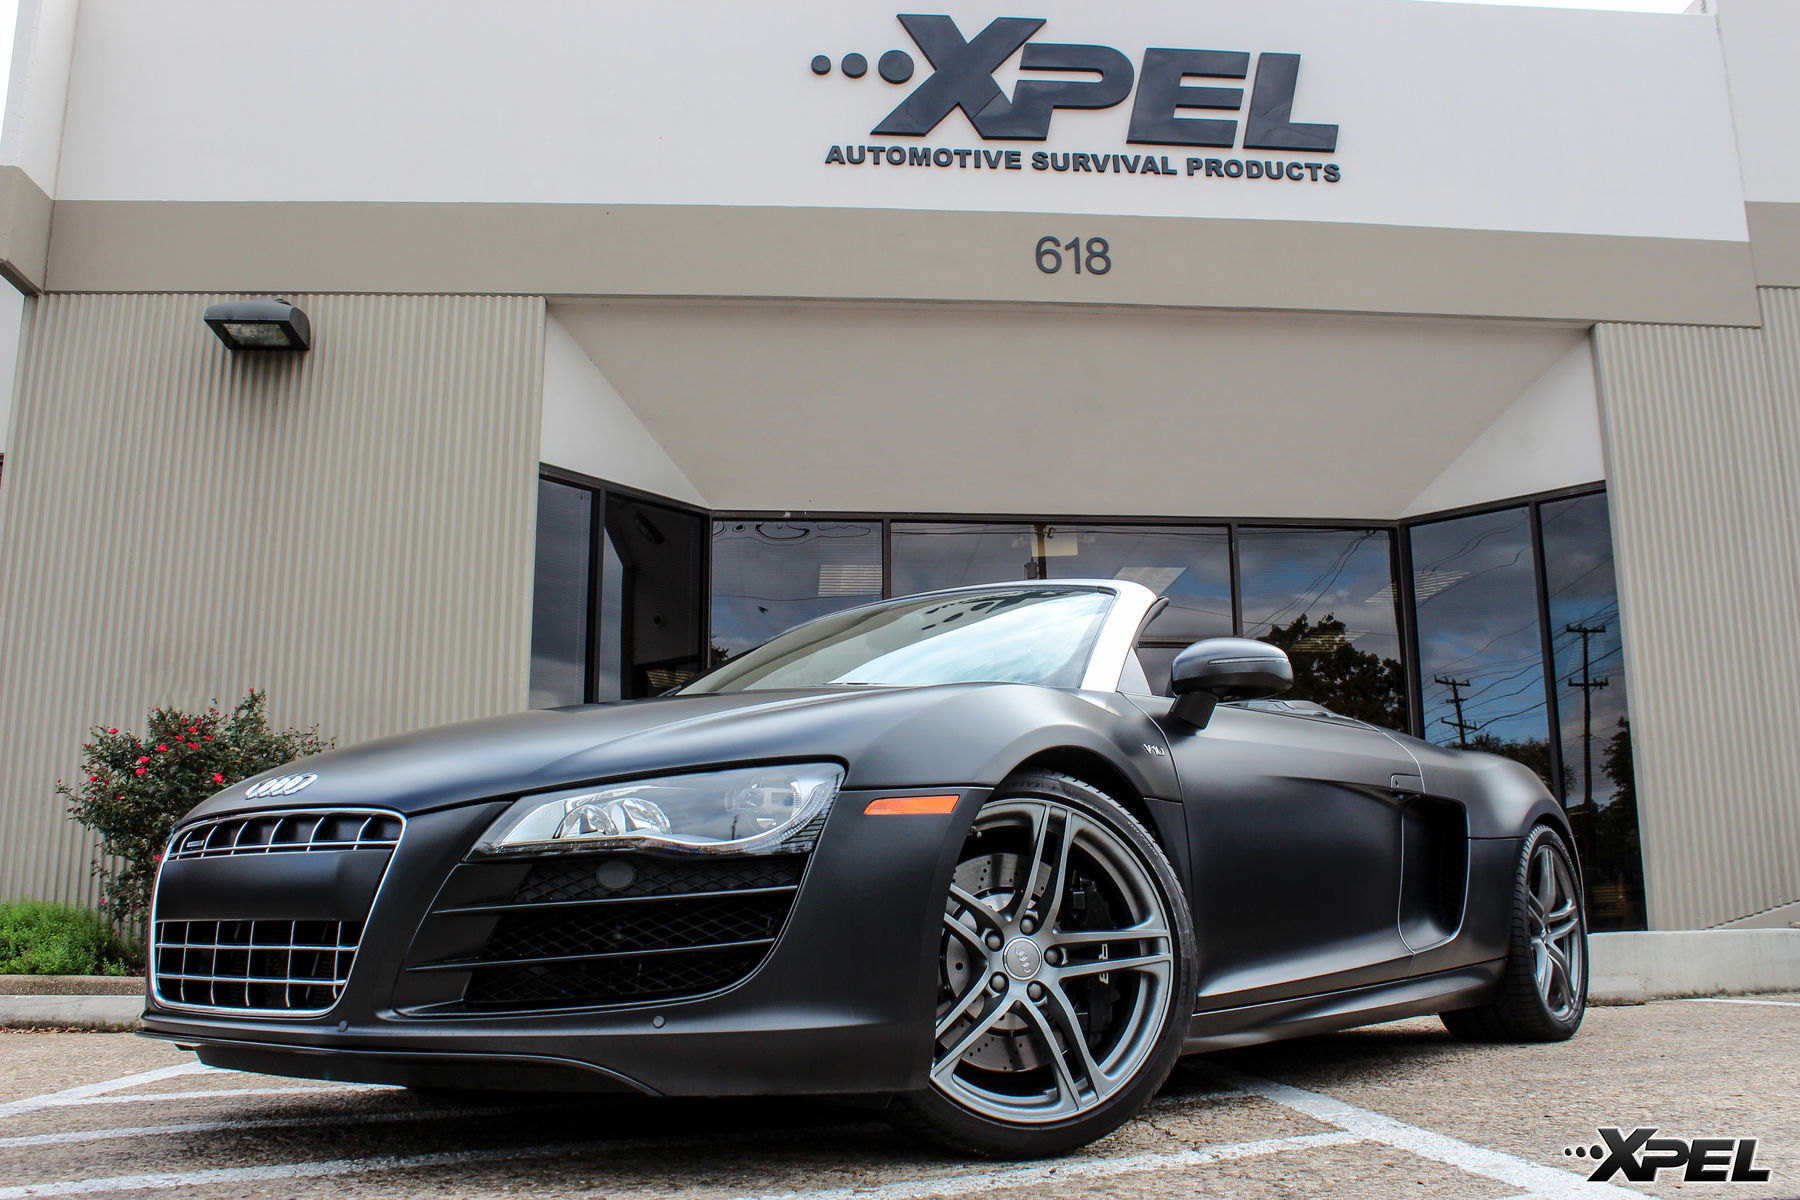 Audi R8 | Fully wrapped in XPEL STEALTH satin-finish paint protection film